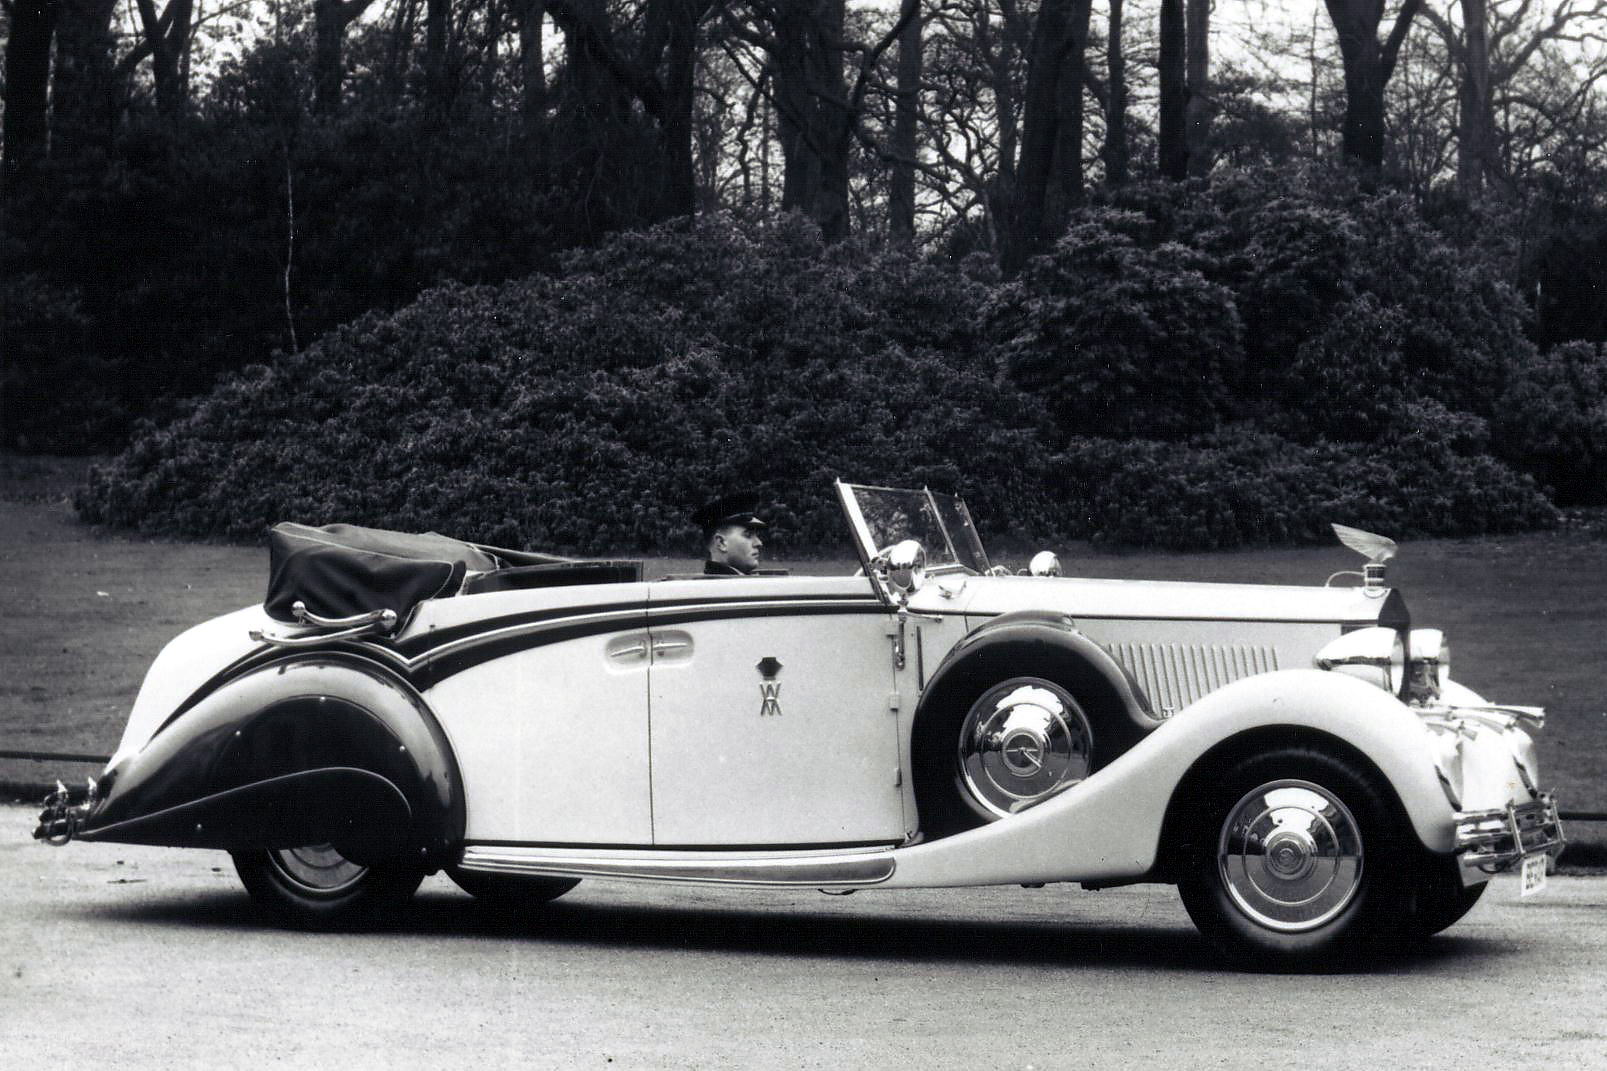 A Lalique Victoire mascot on the hood of a 1937 Rolls-Royce IIIS Phantom owned by the Prince of Berar. (Photo courtesy of Flickr user klintan77)